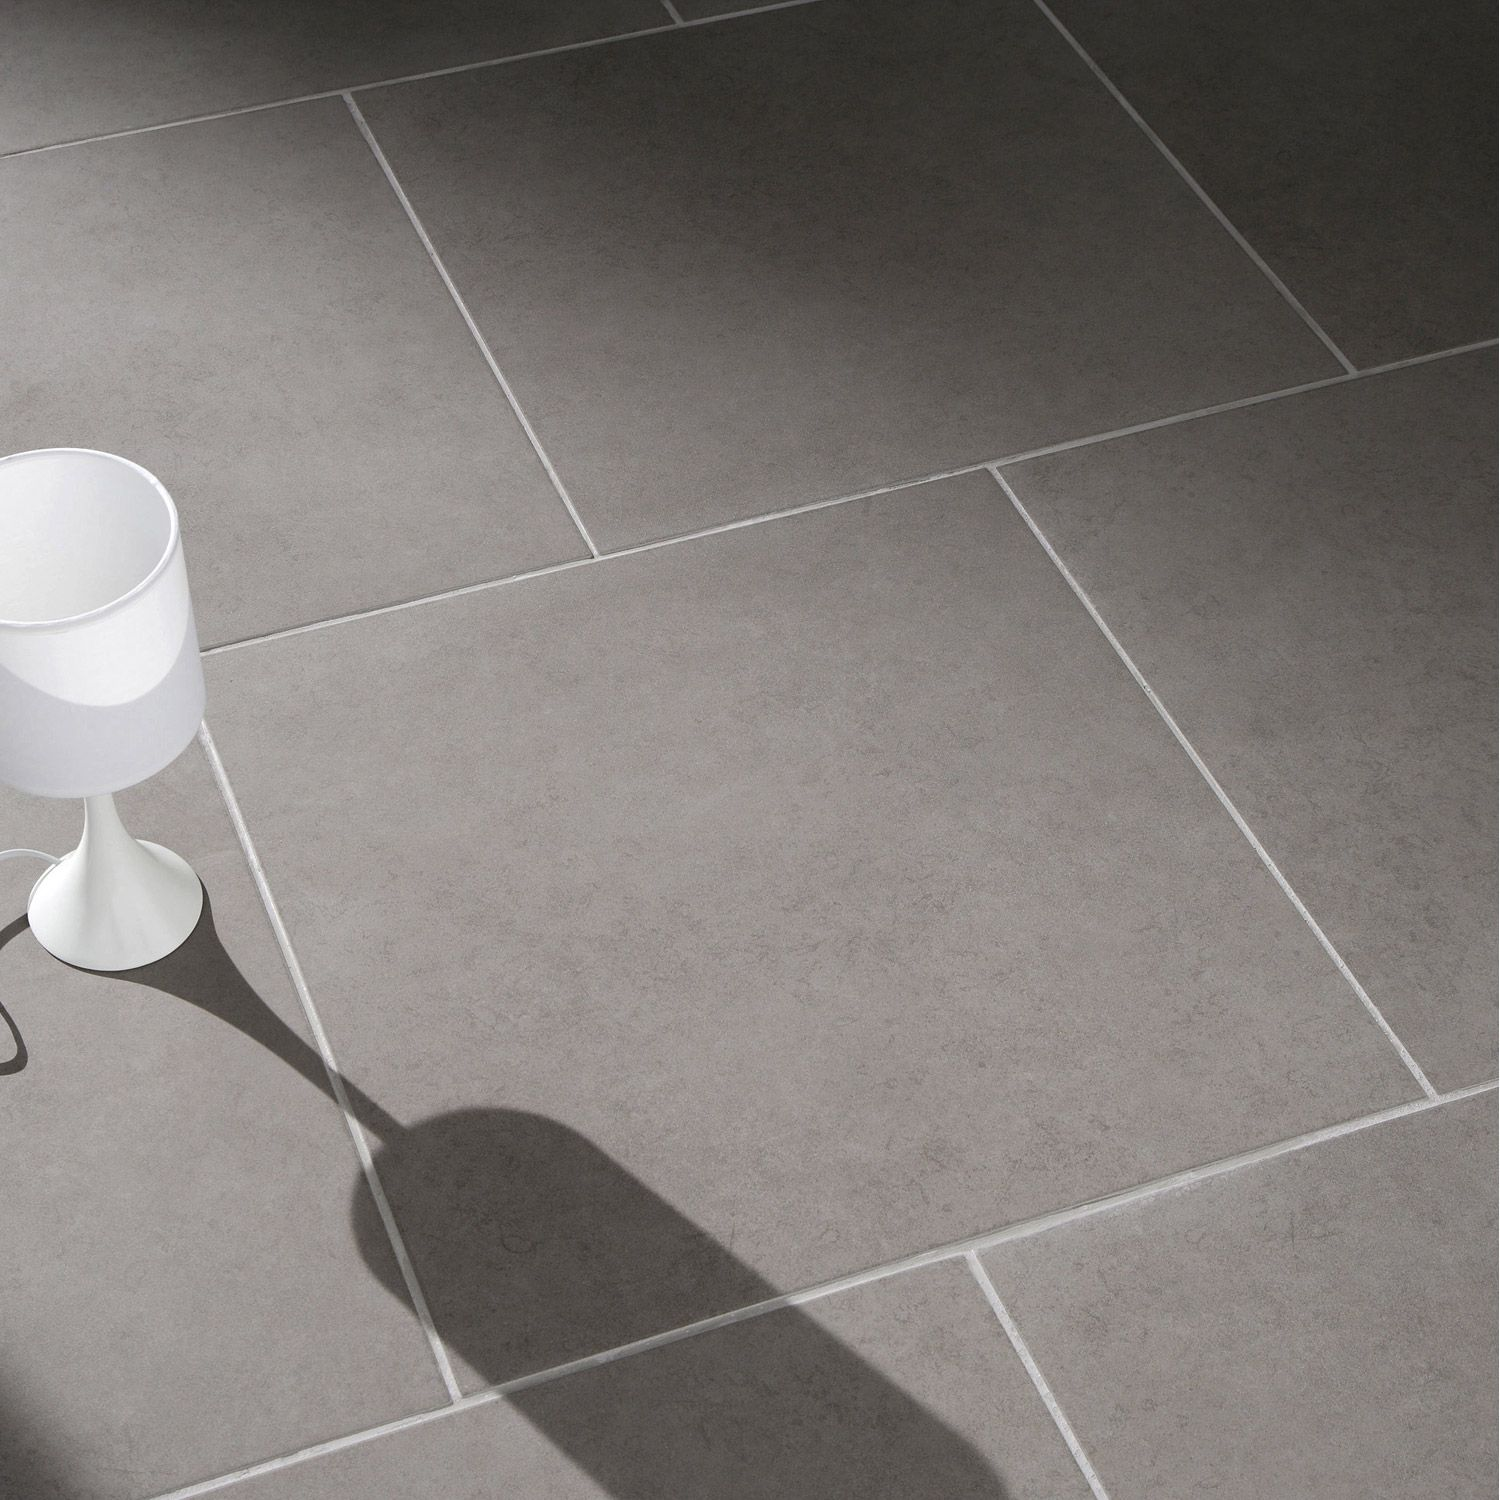 Comment Nettoyer Joint Blanc Carrelage Sol carrelage gris joints blancs | carrelage intérieur